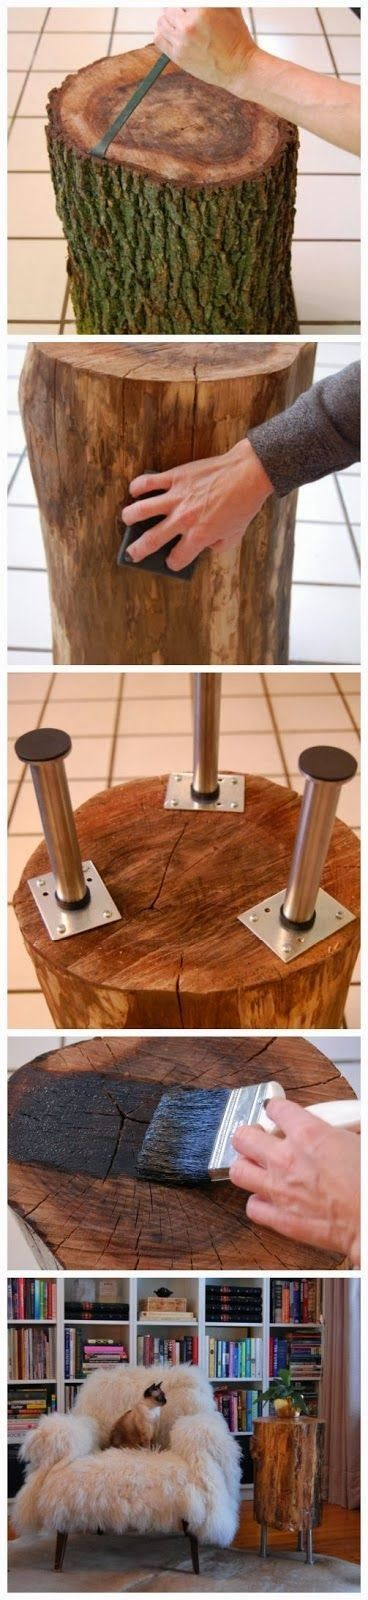 How to Make a Tree Stump Table | A 1 Nice Blog #CraftsDIYSerendipity #crafts #diy #projects #tutorials Craft and DIY Projects and Tutorials: